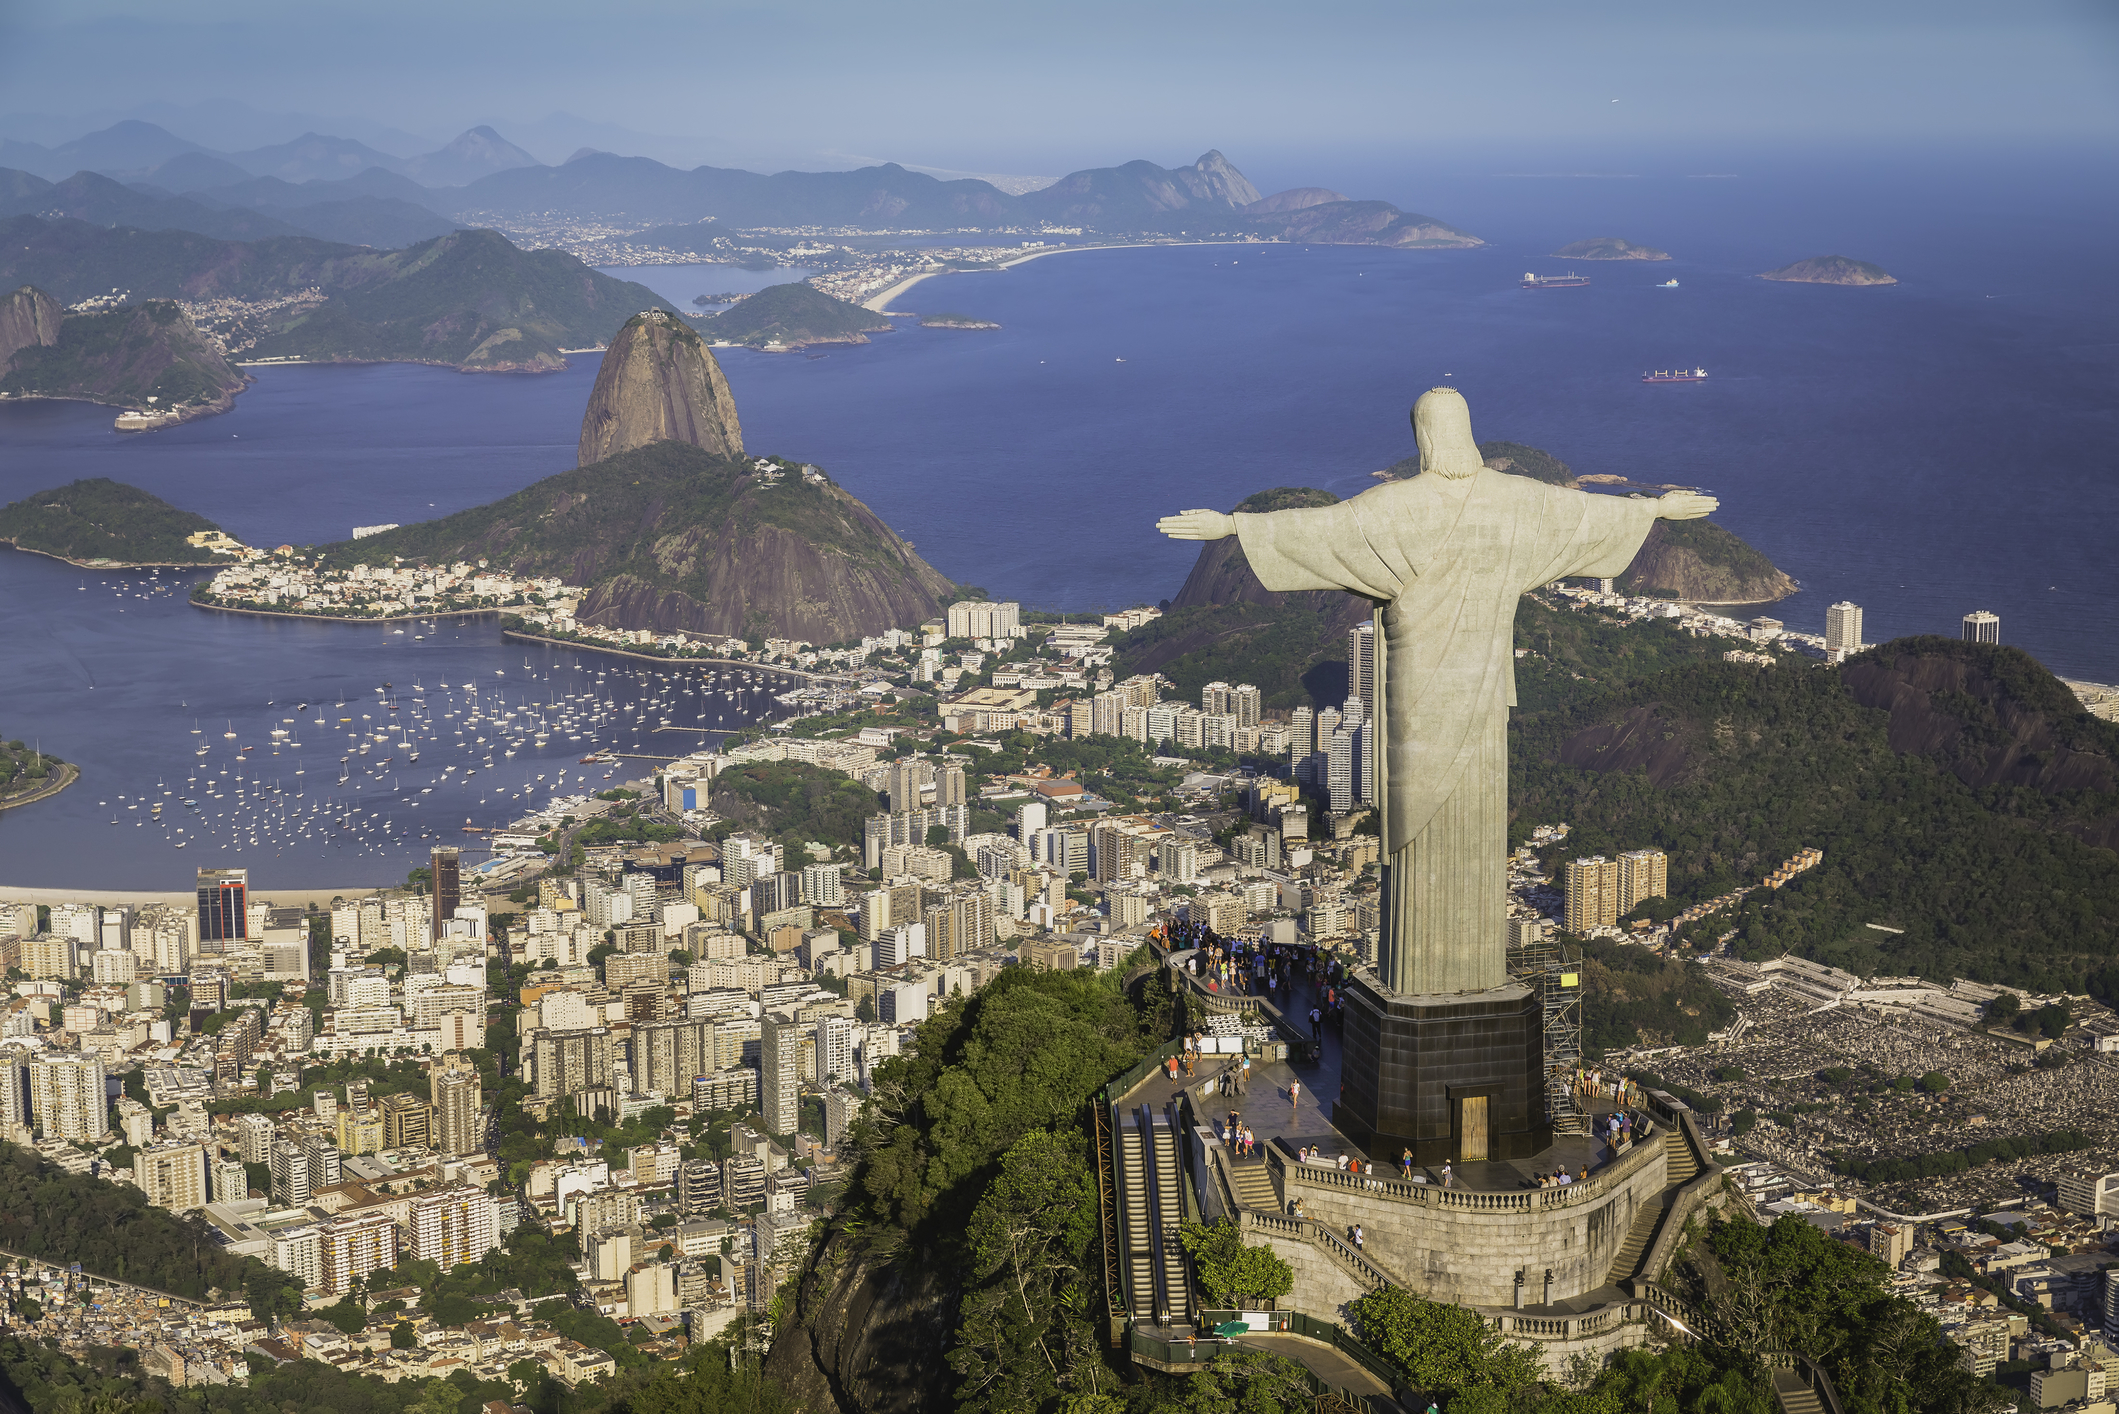 Christ the Redeemer statue is a popular site of Rio de Janeiro.